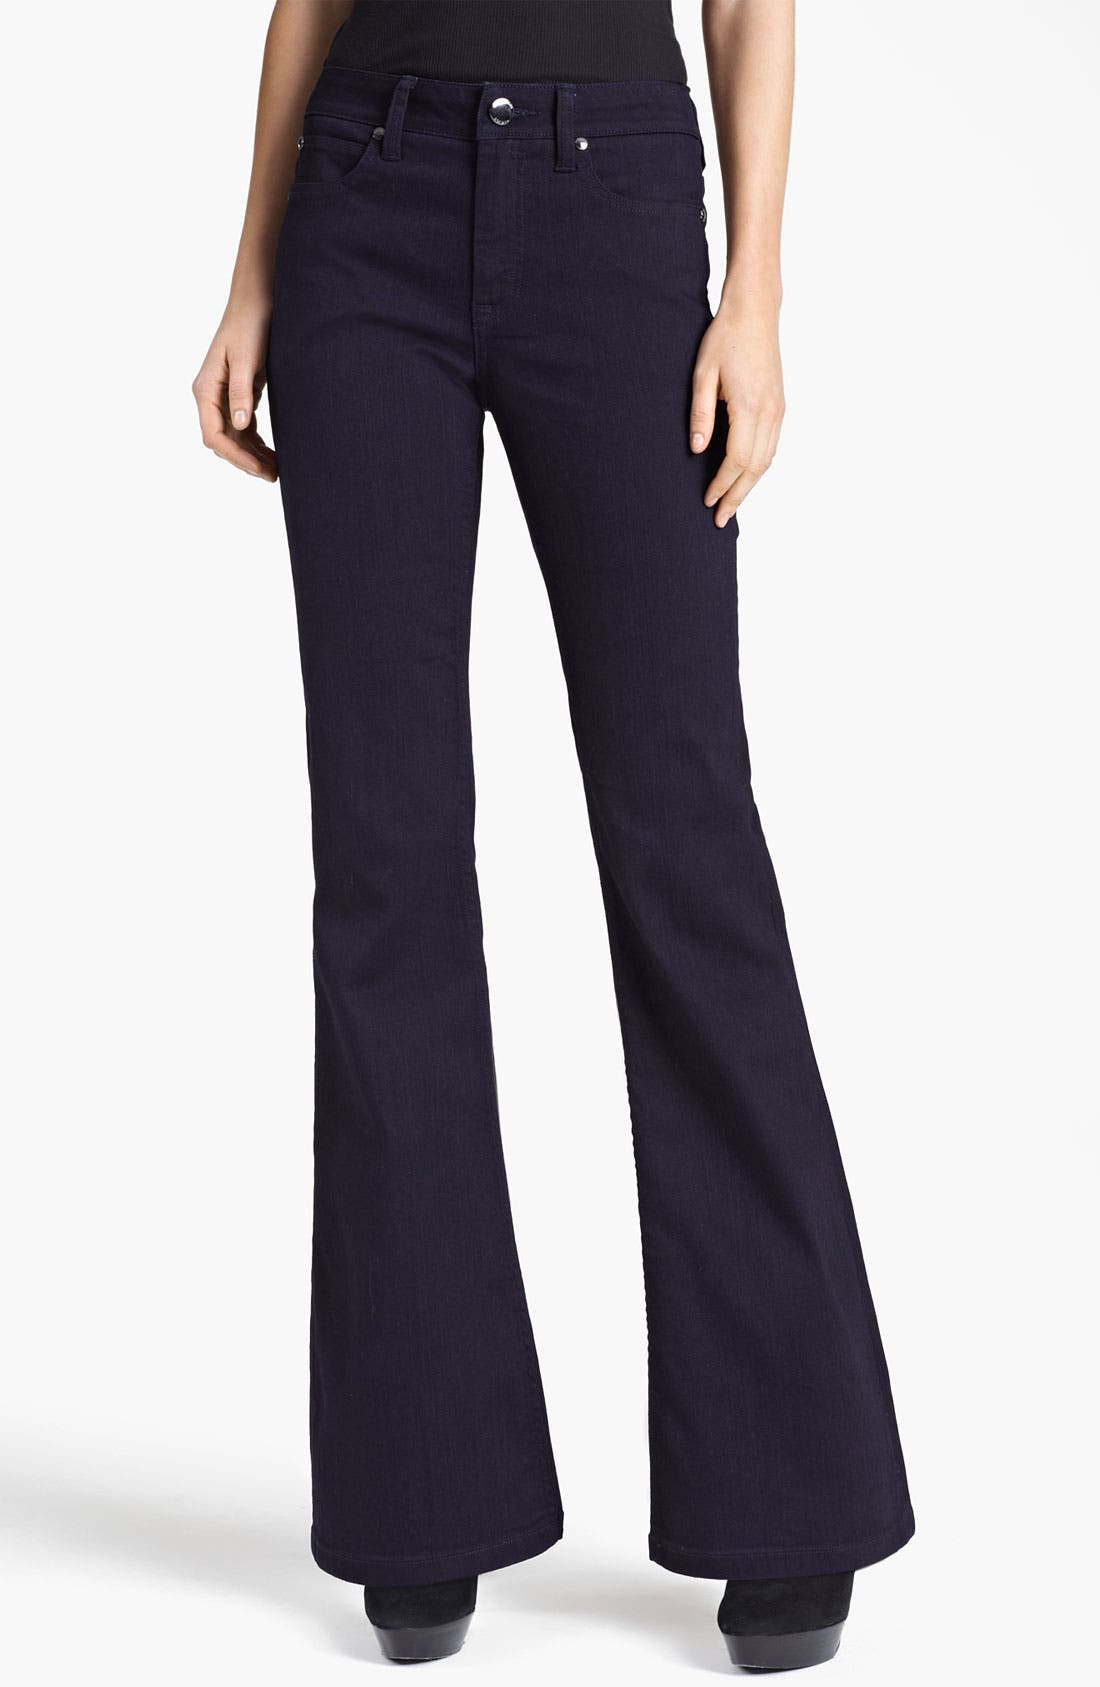 Alternate Image 1 Selected - Burberry London Flared Stretch Jeans